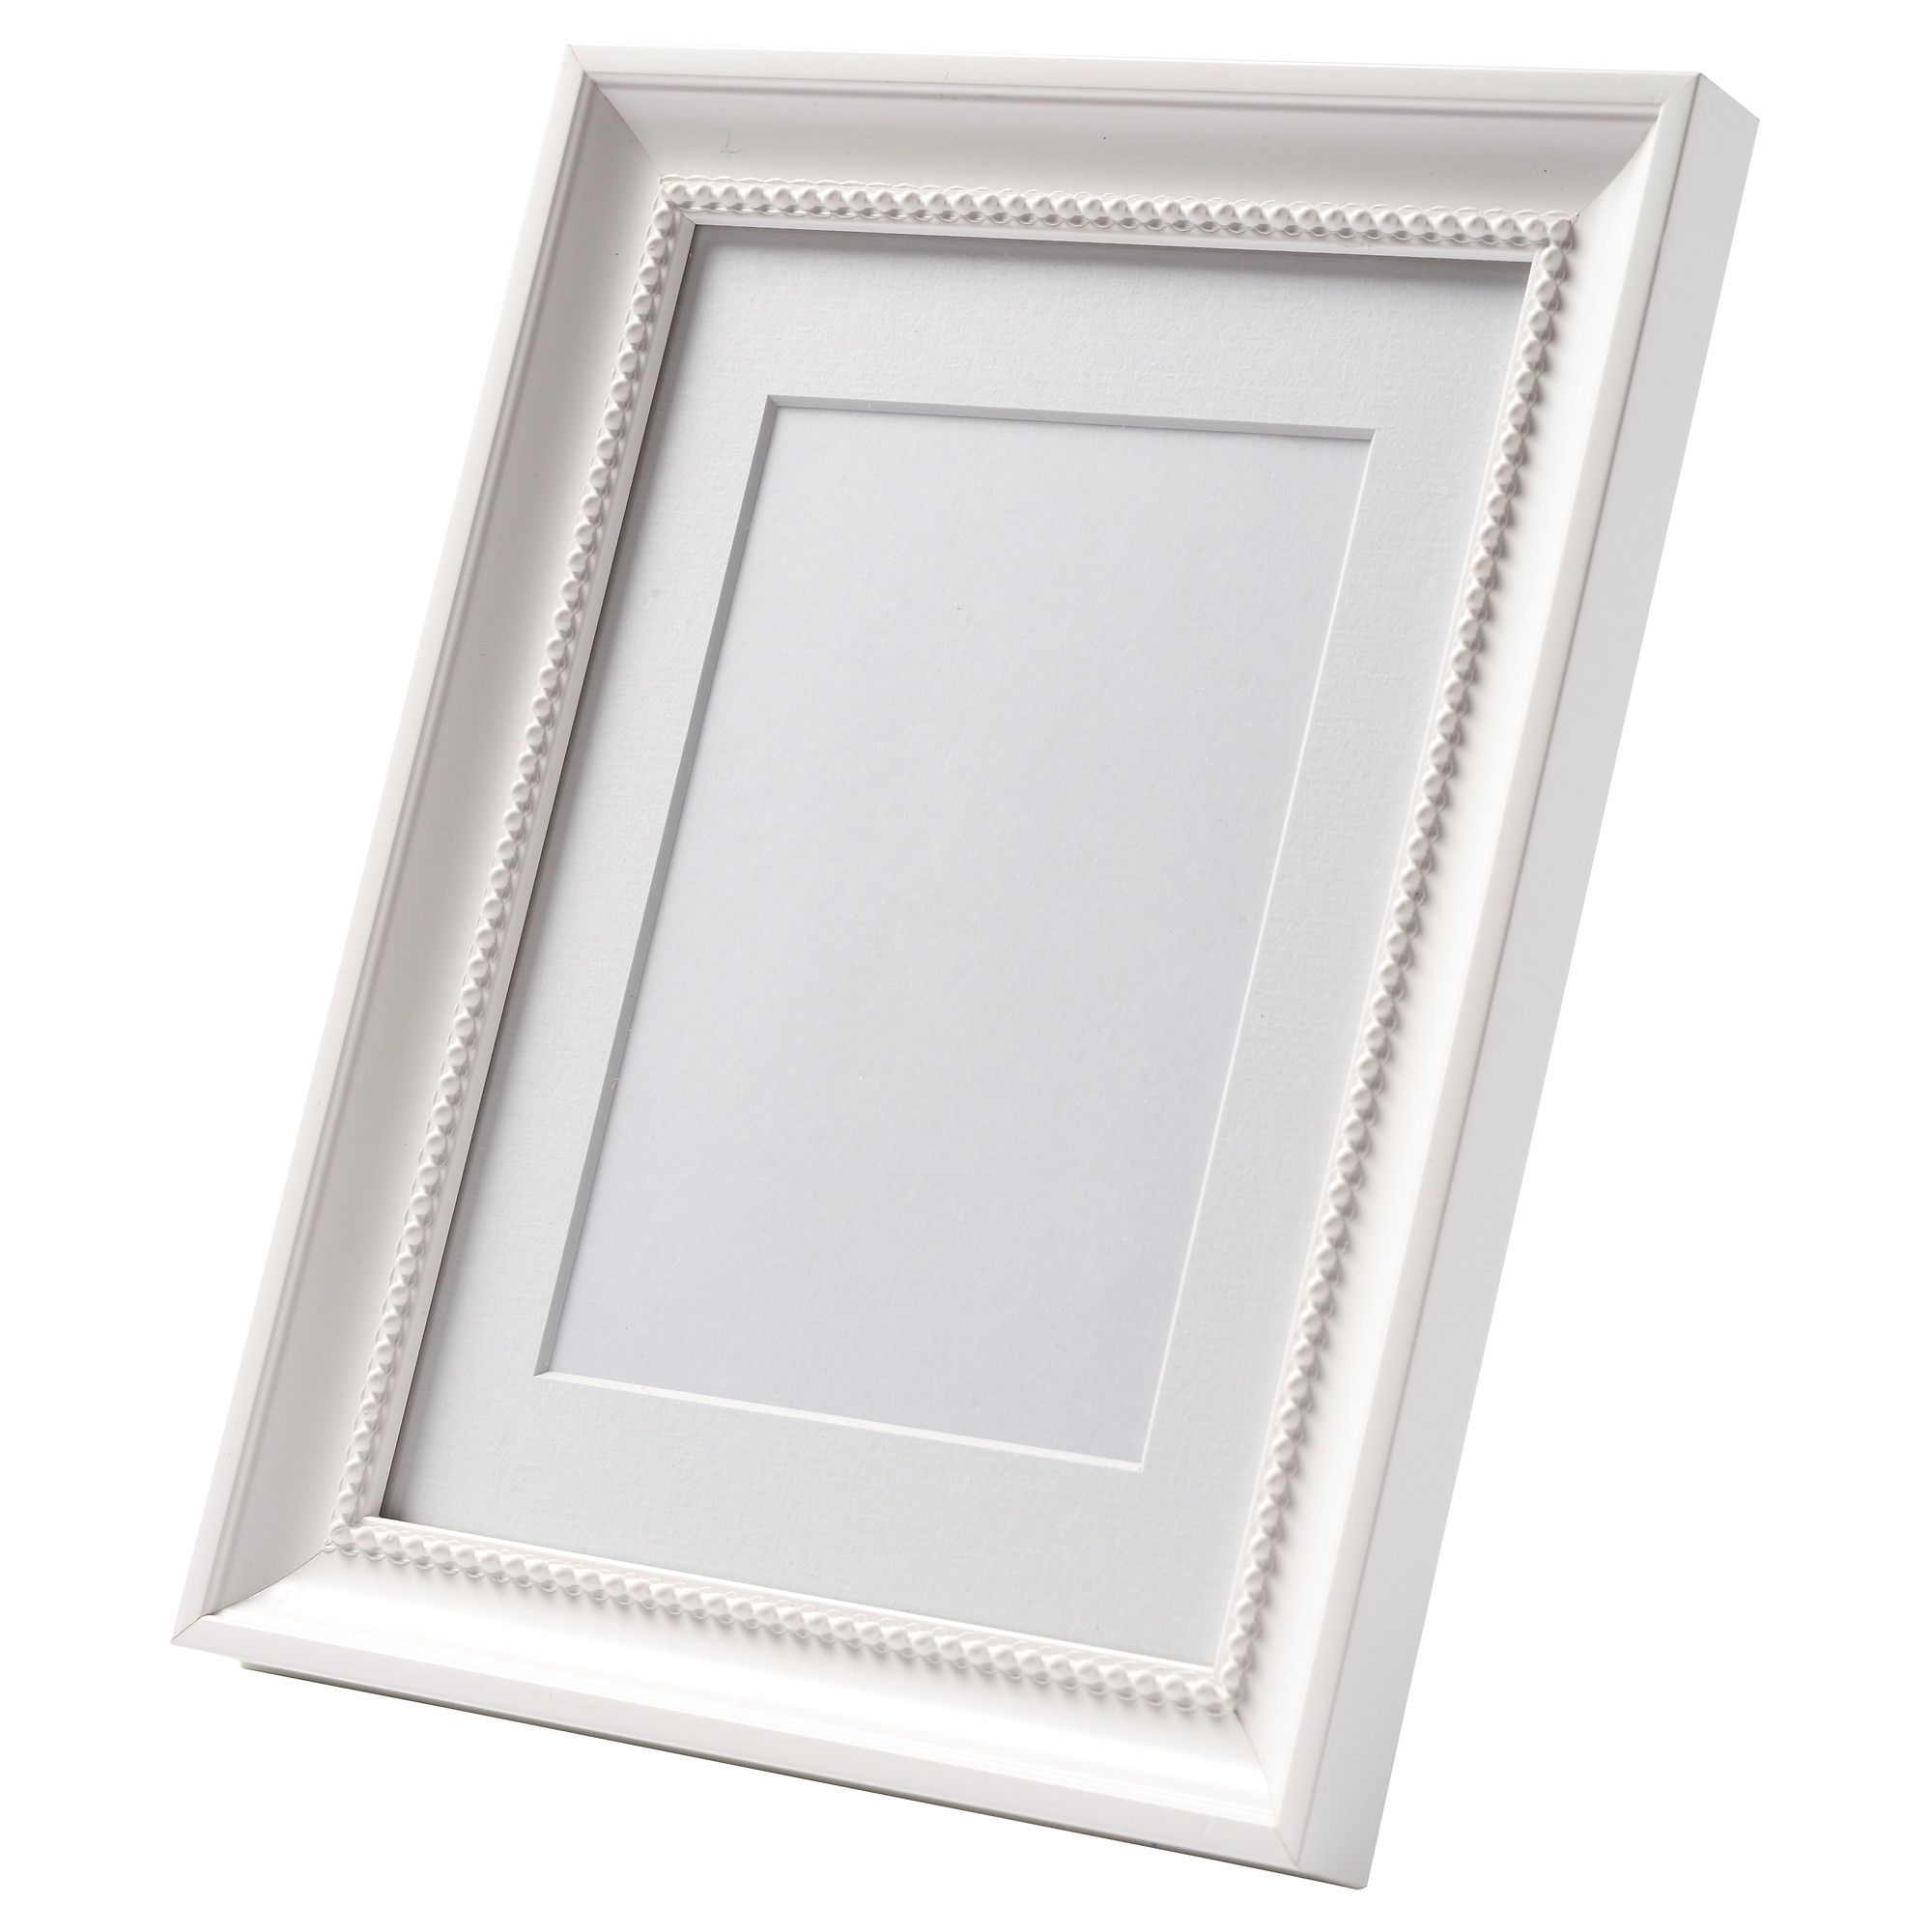 ikea sndrum frame white cm the mount enhances the picture and makes framing easy - White Picture Frames